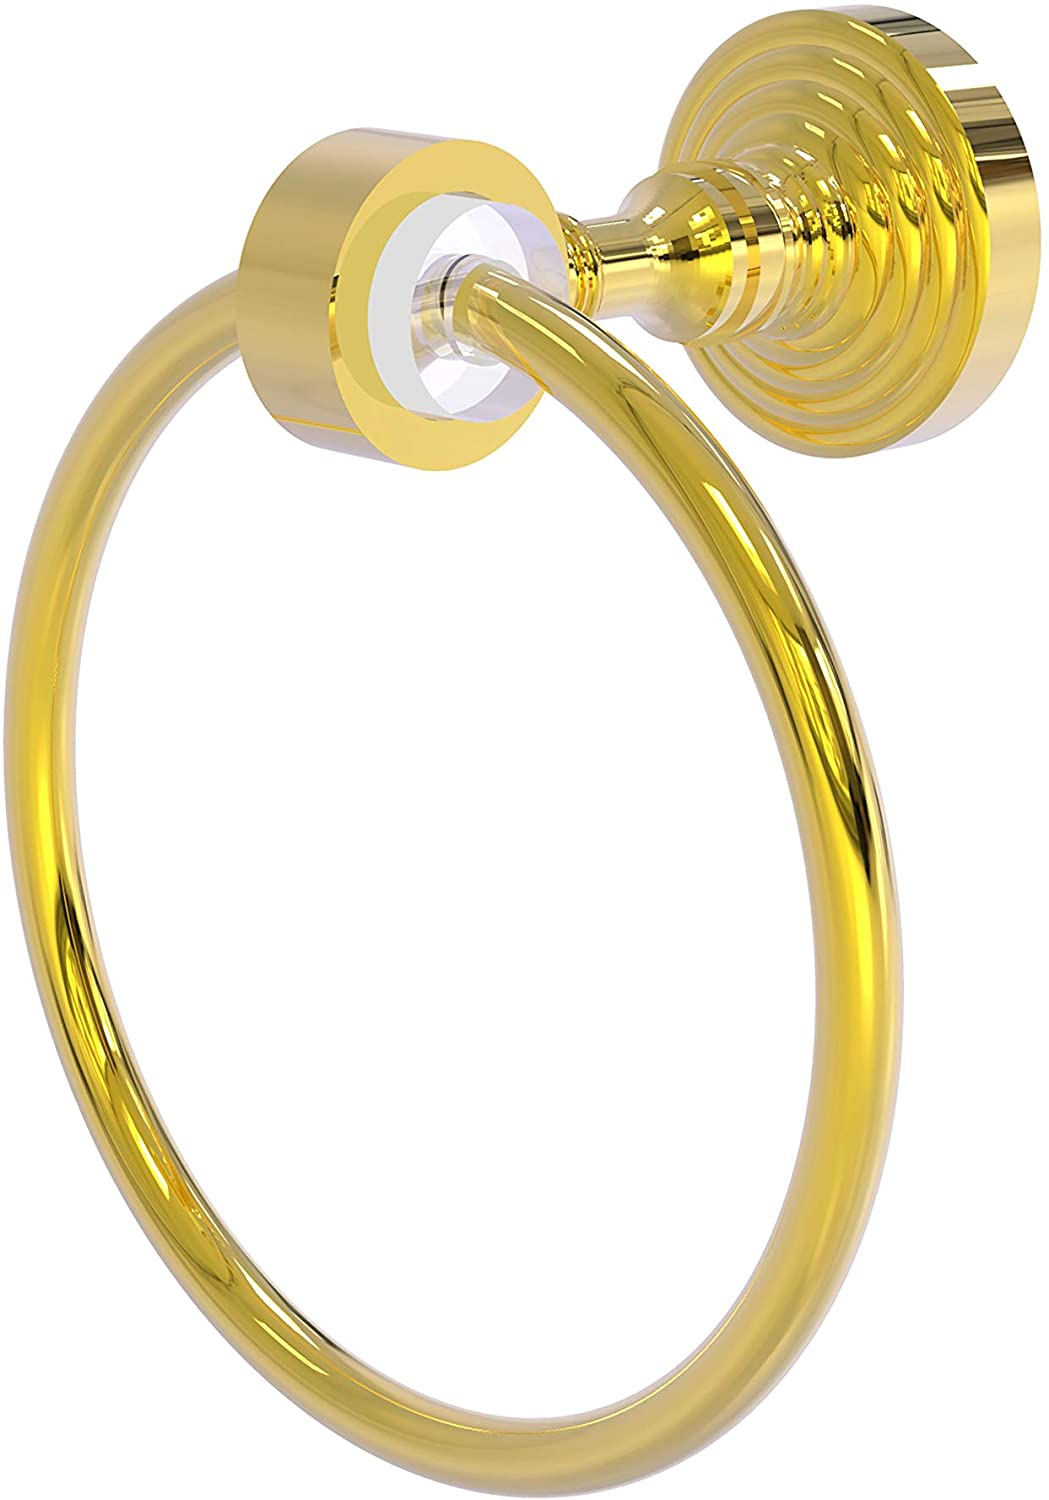 Allied Brass PG-16 Pacific Grove Collection Towel Ring, Polished Brass